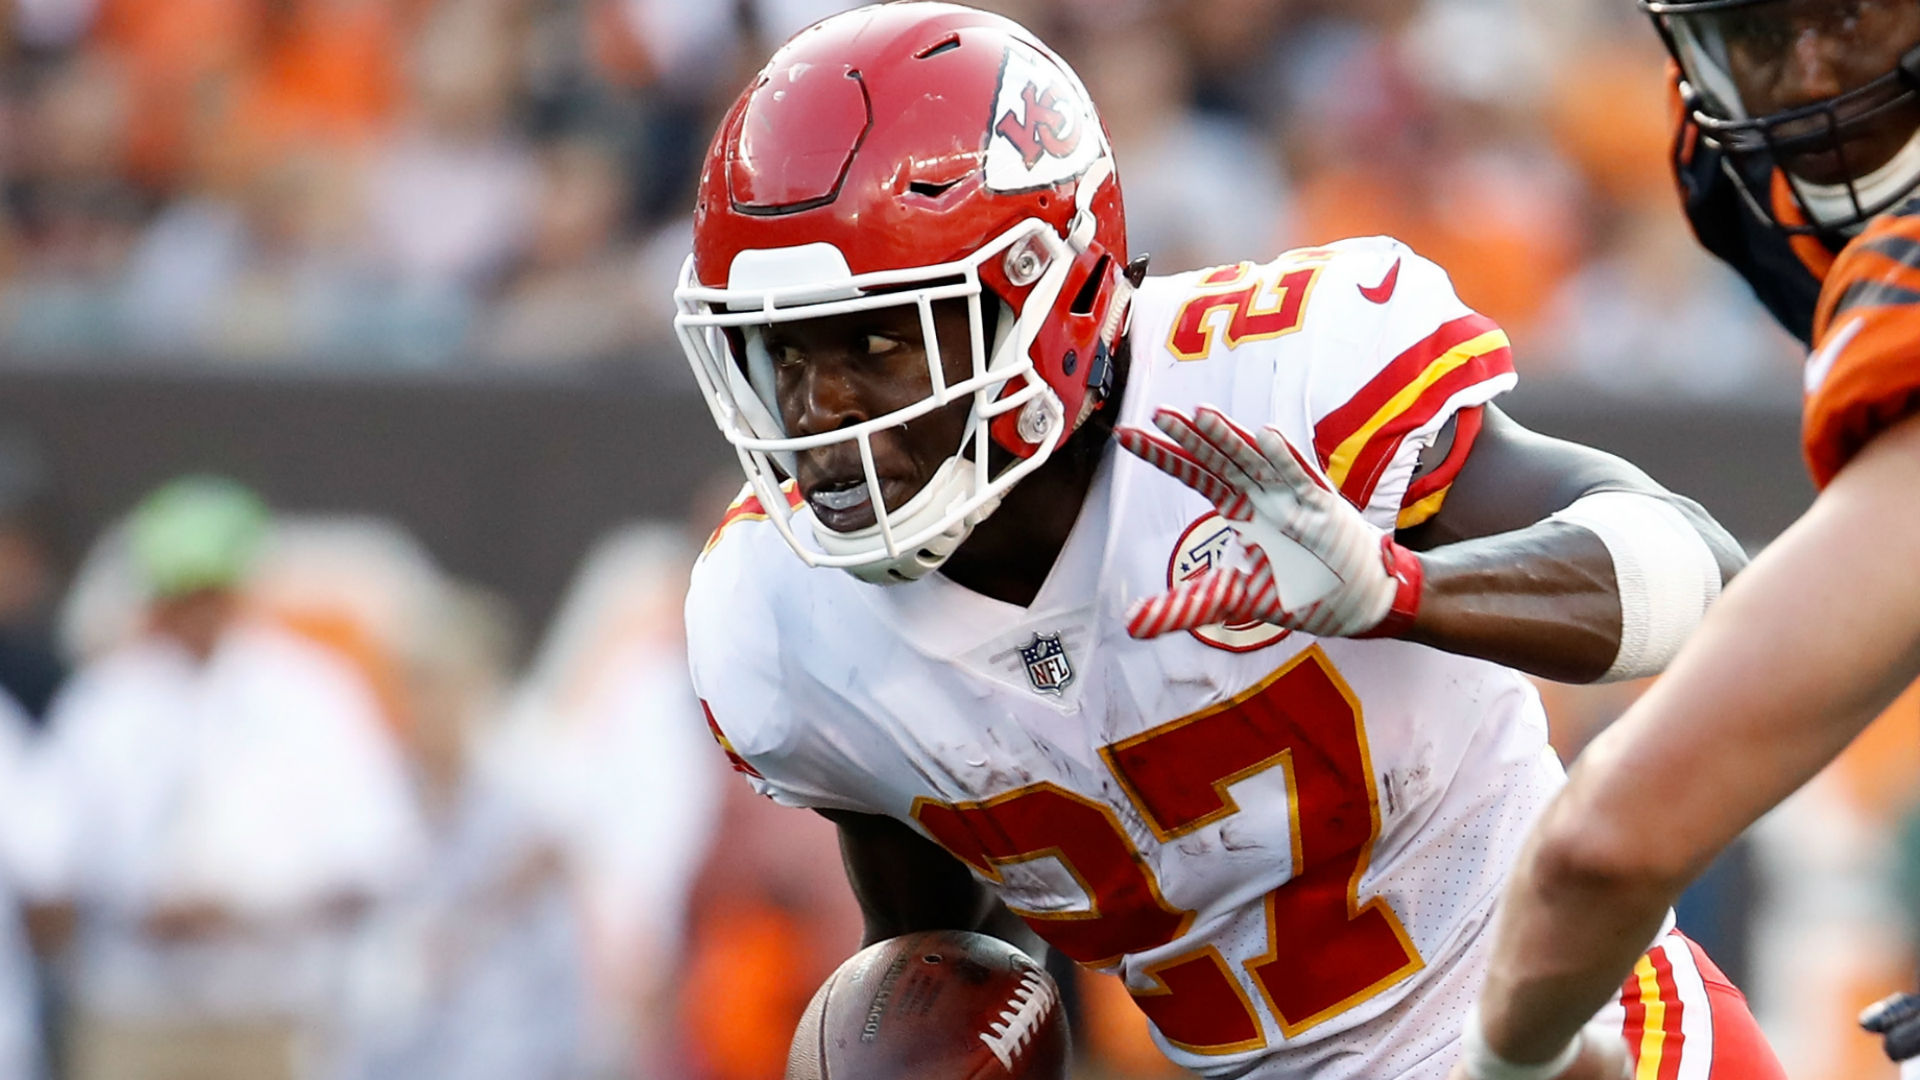 Kareem Hunt on second chance with Browns: 'I'm not willing to mess that up'